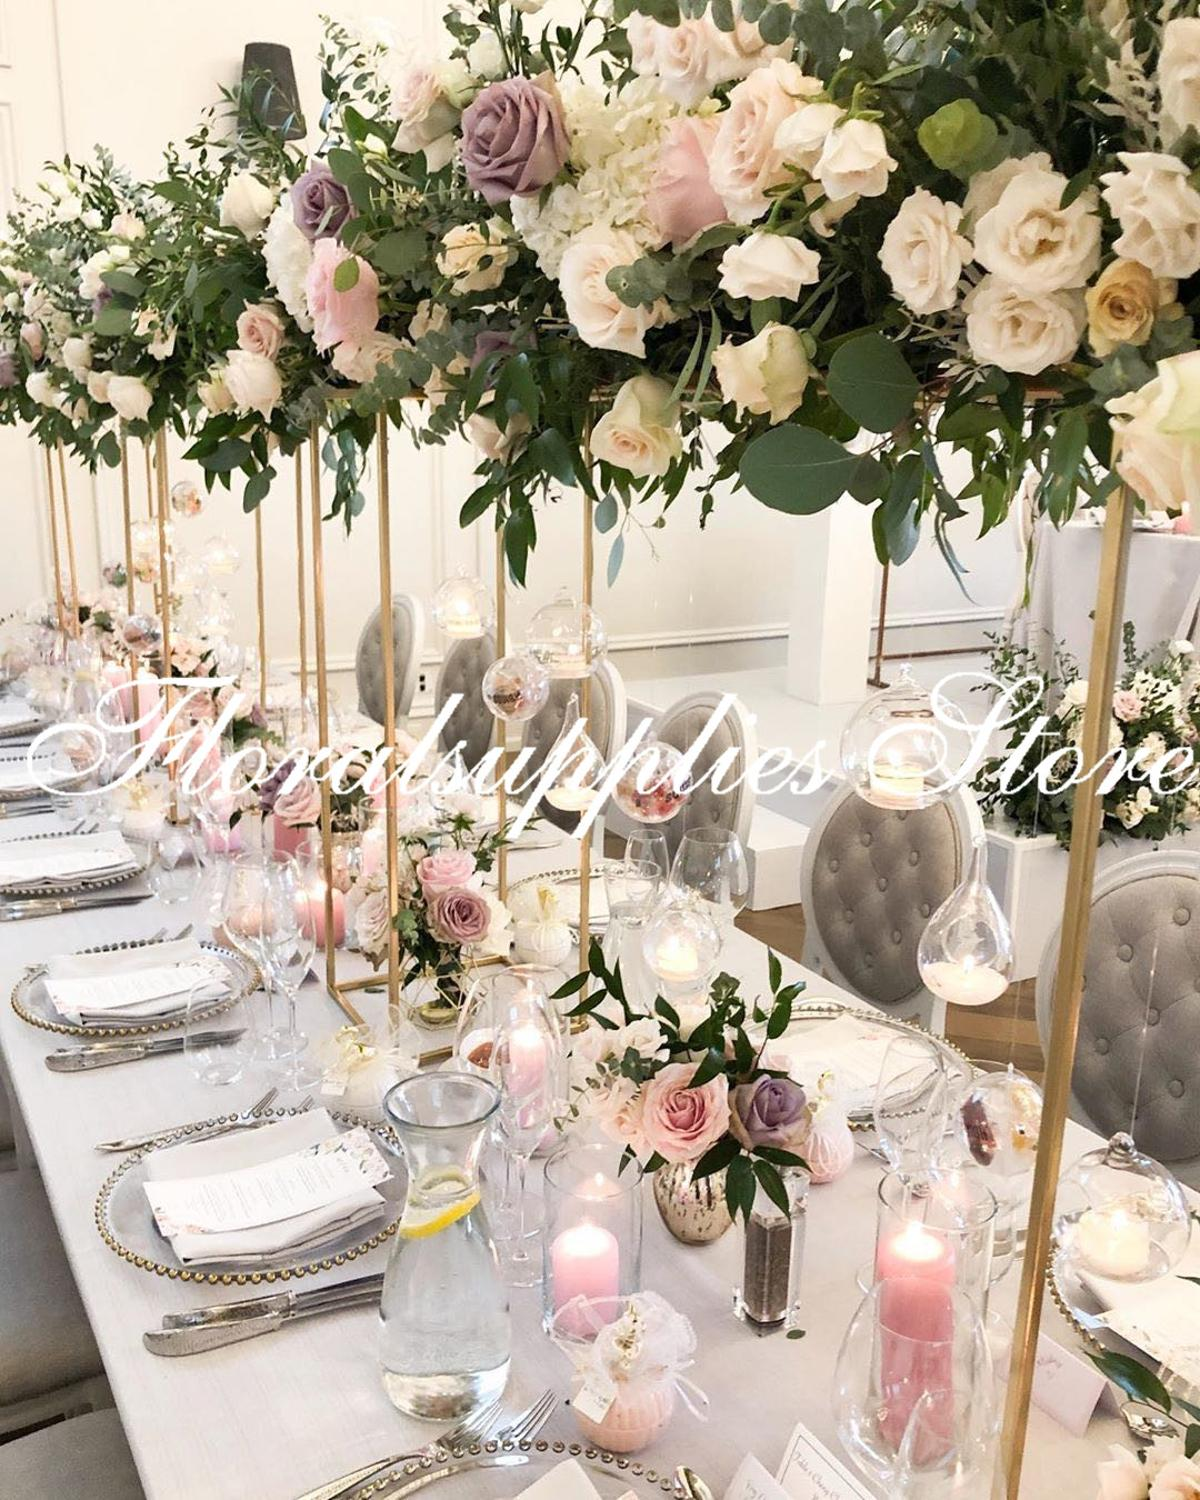 10PCS gold iron flower stand wedding decoration table centerpiece tall vases marriage pillars metal props event party decor